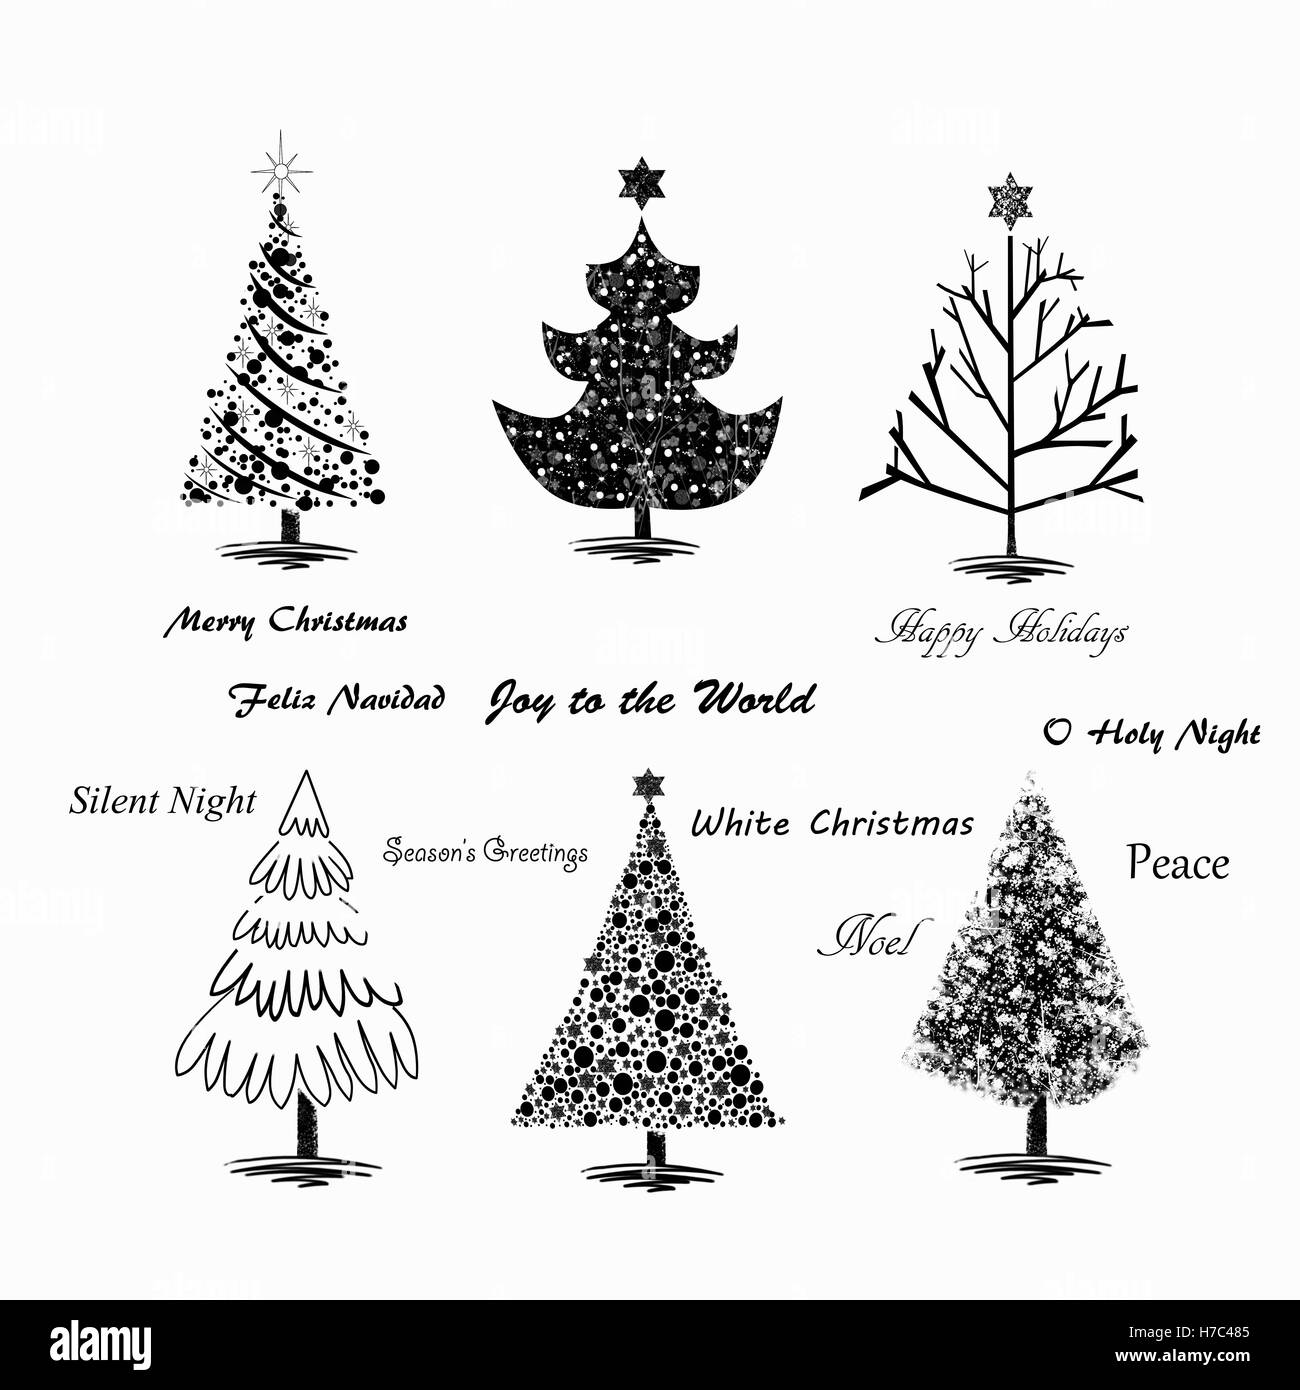 Hand Drawn Christmas Trees On White Background With Popular Holiday Quotes  Written Across The Illustration.